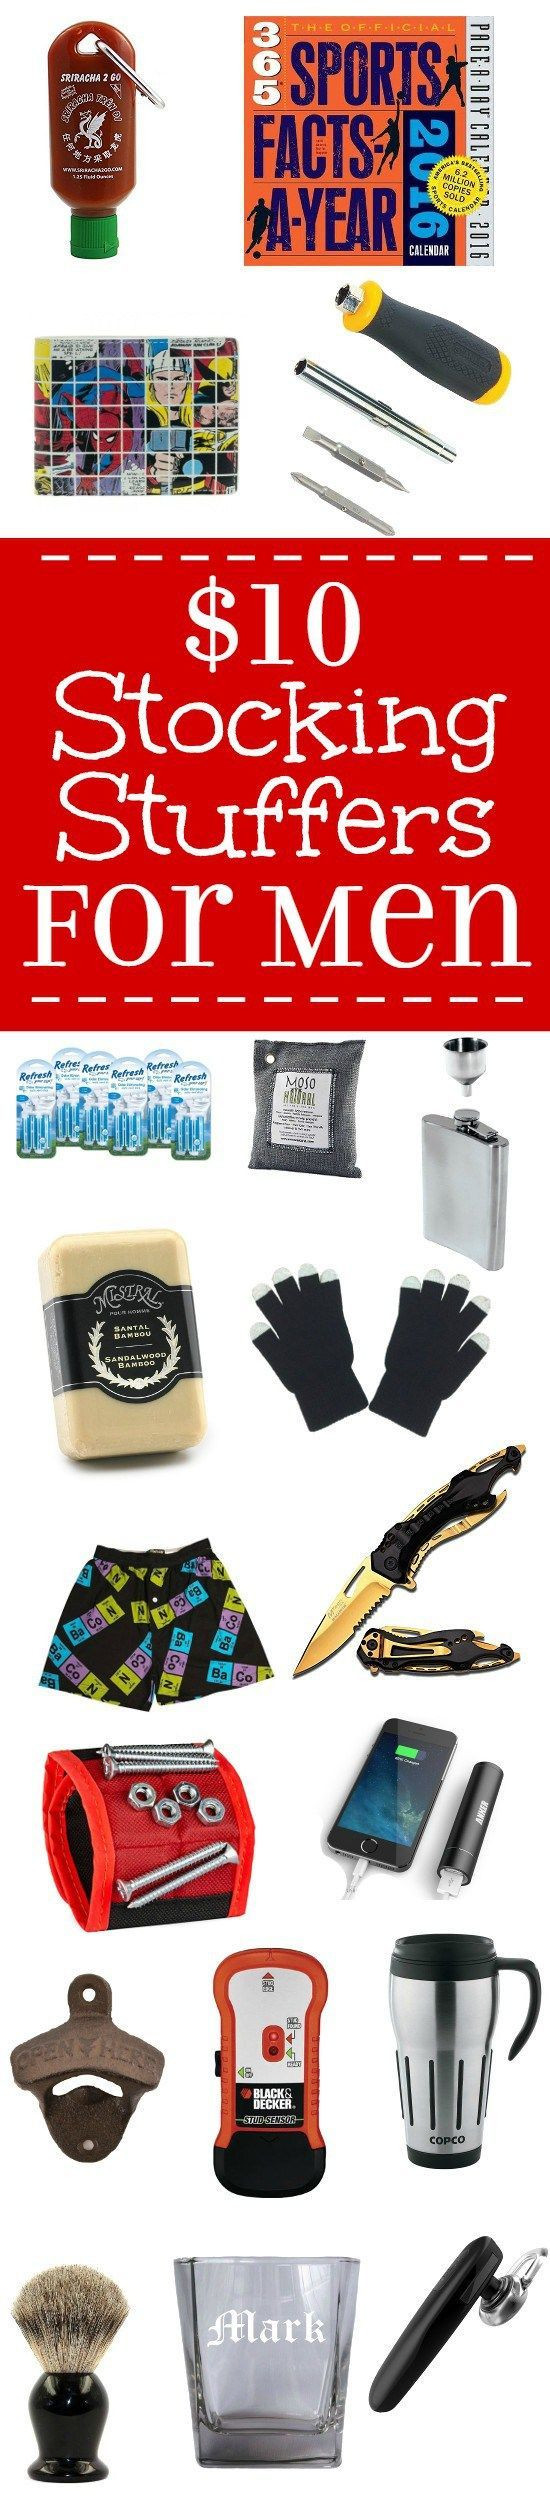 Best ideas about $10 Gift Ideas For Guys . Save or Pin $10 Stocking Stuffer Ideas for Men Now.